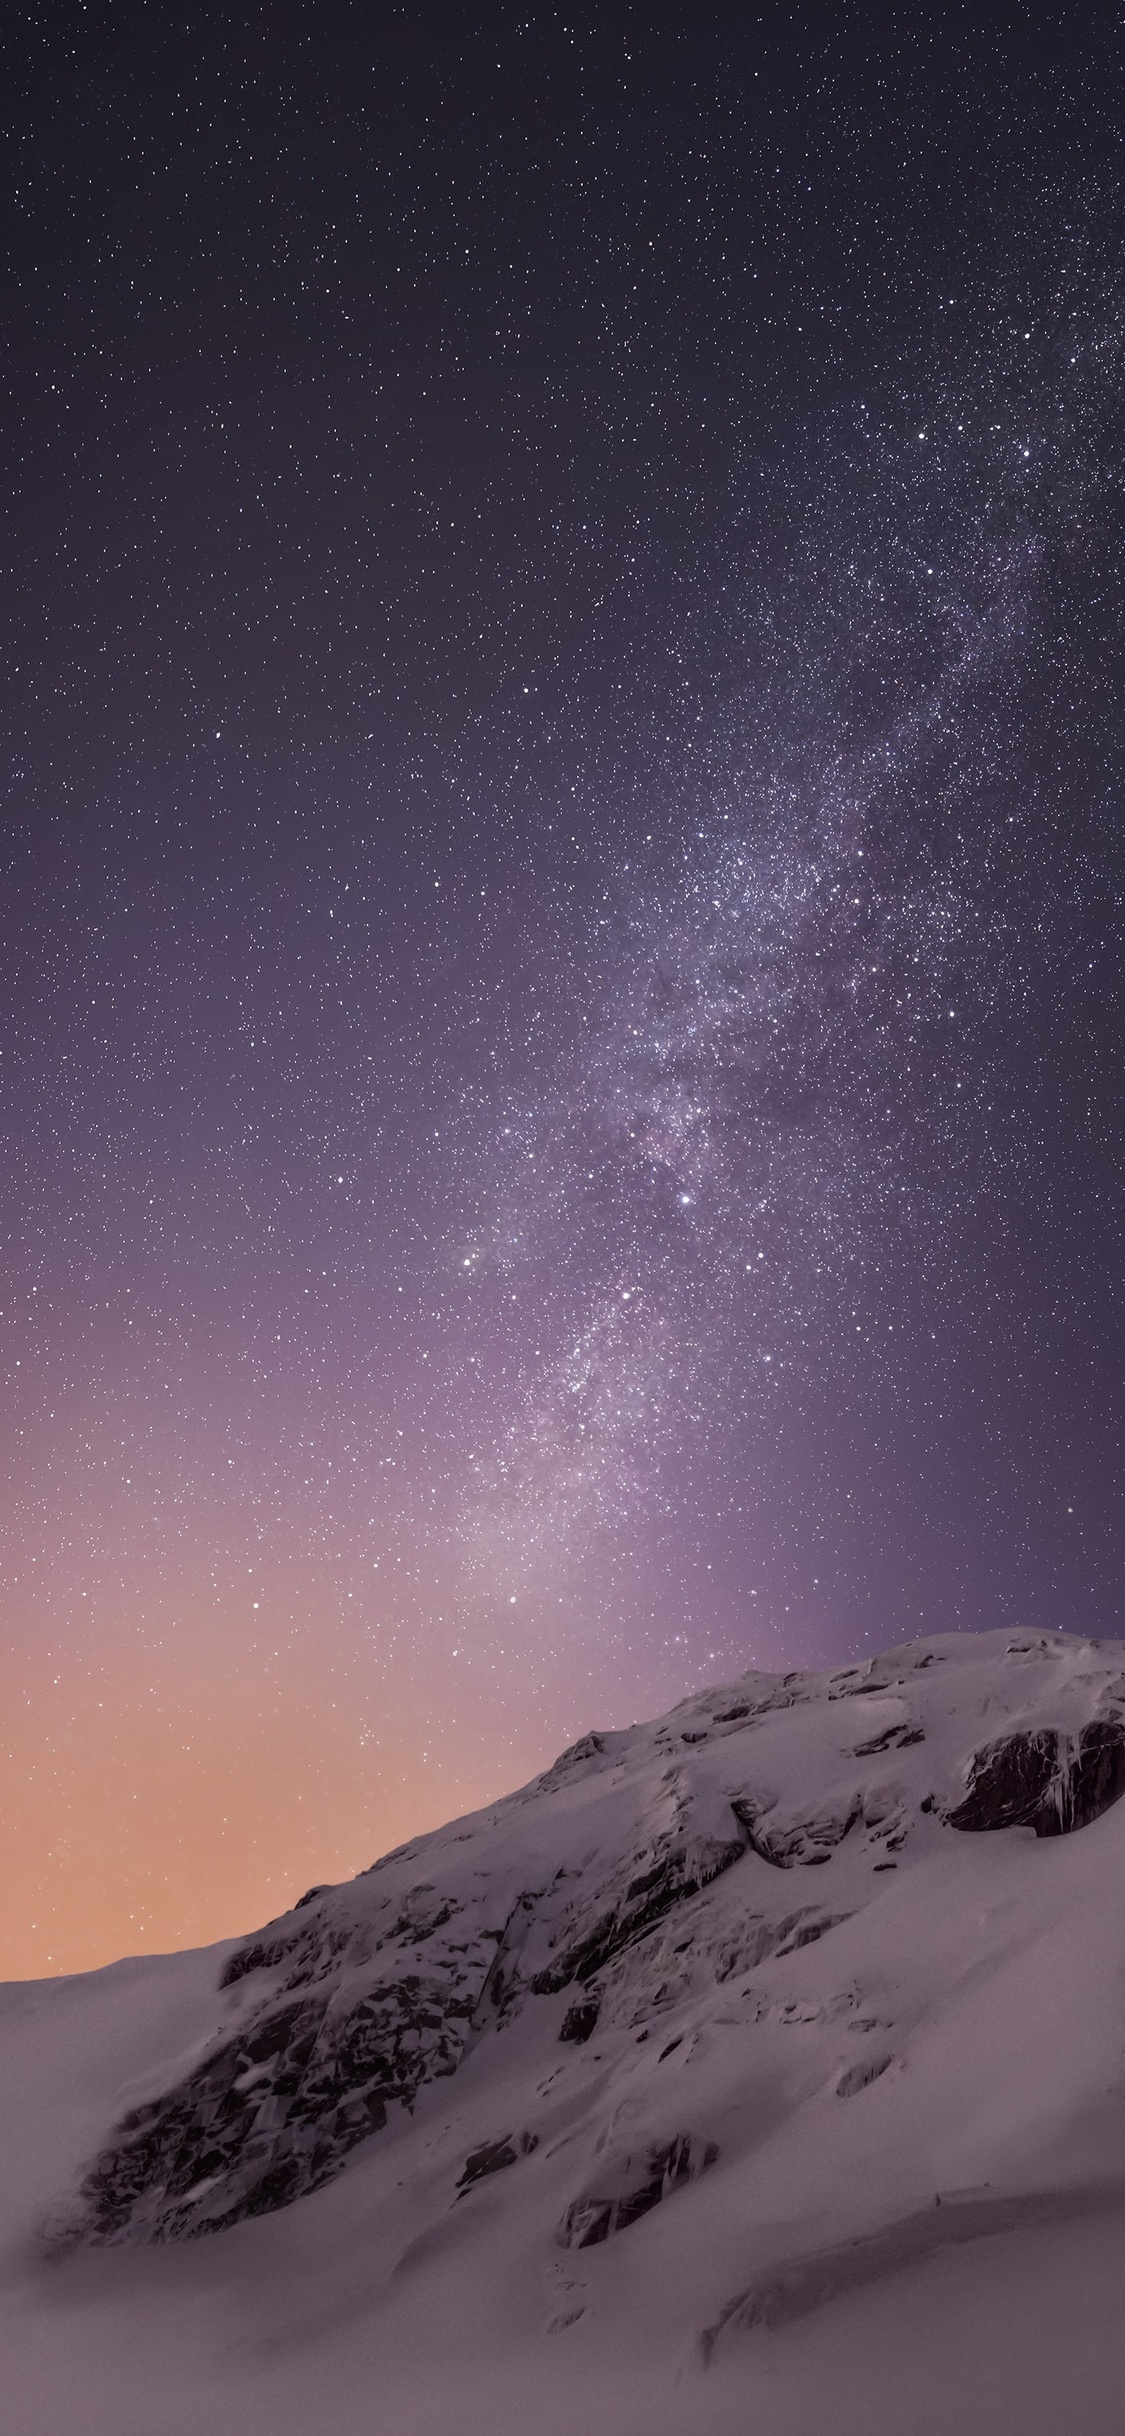 1125x2436 Mountains And Stars Iphone Xs Iphone 10 Iphone X